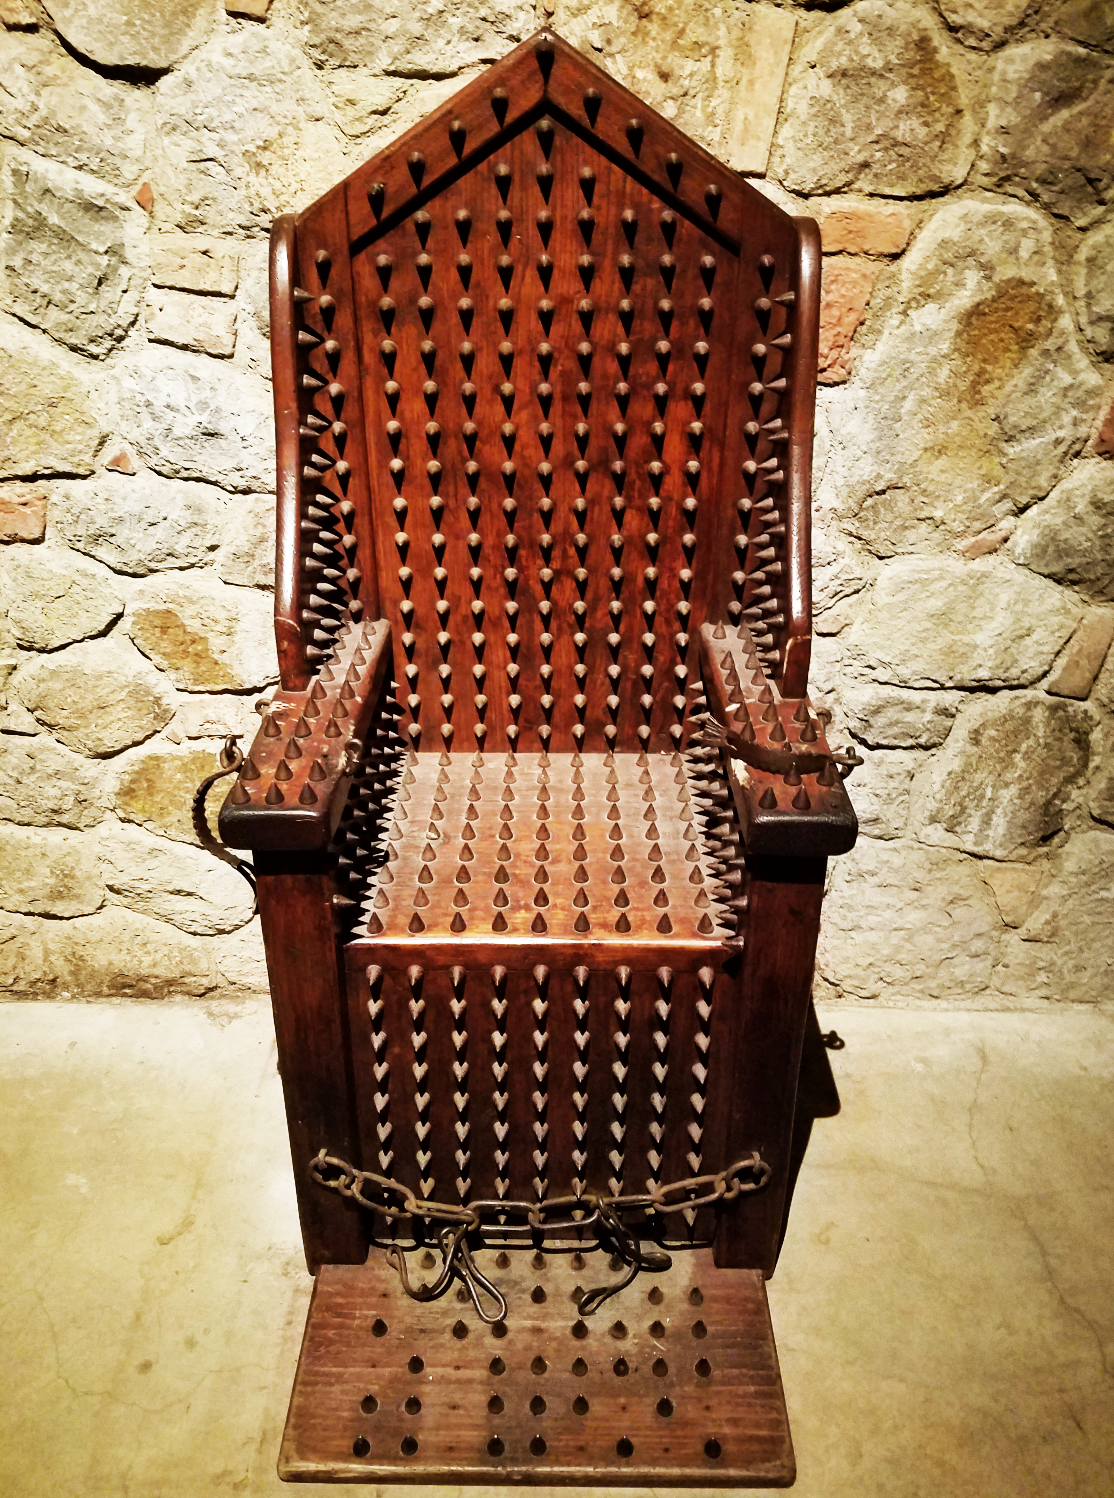 A painful chair to sit in Castillo de Amoroso's torture chamber.